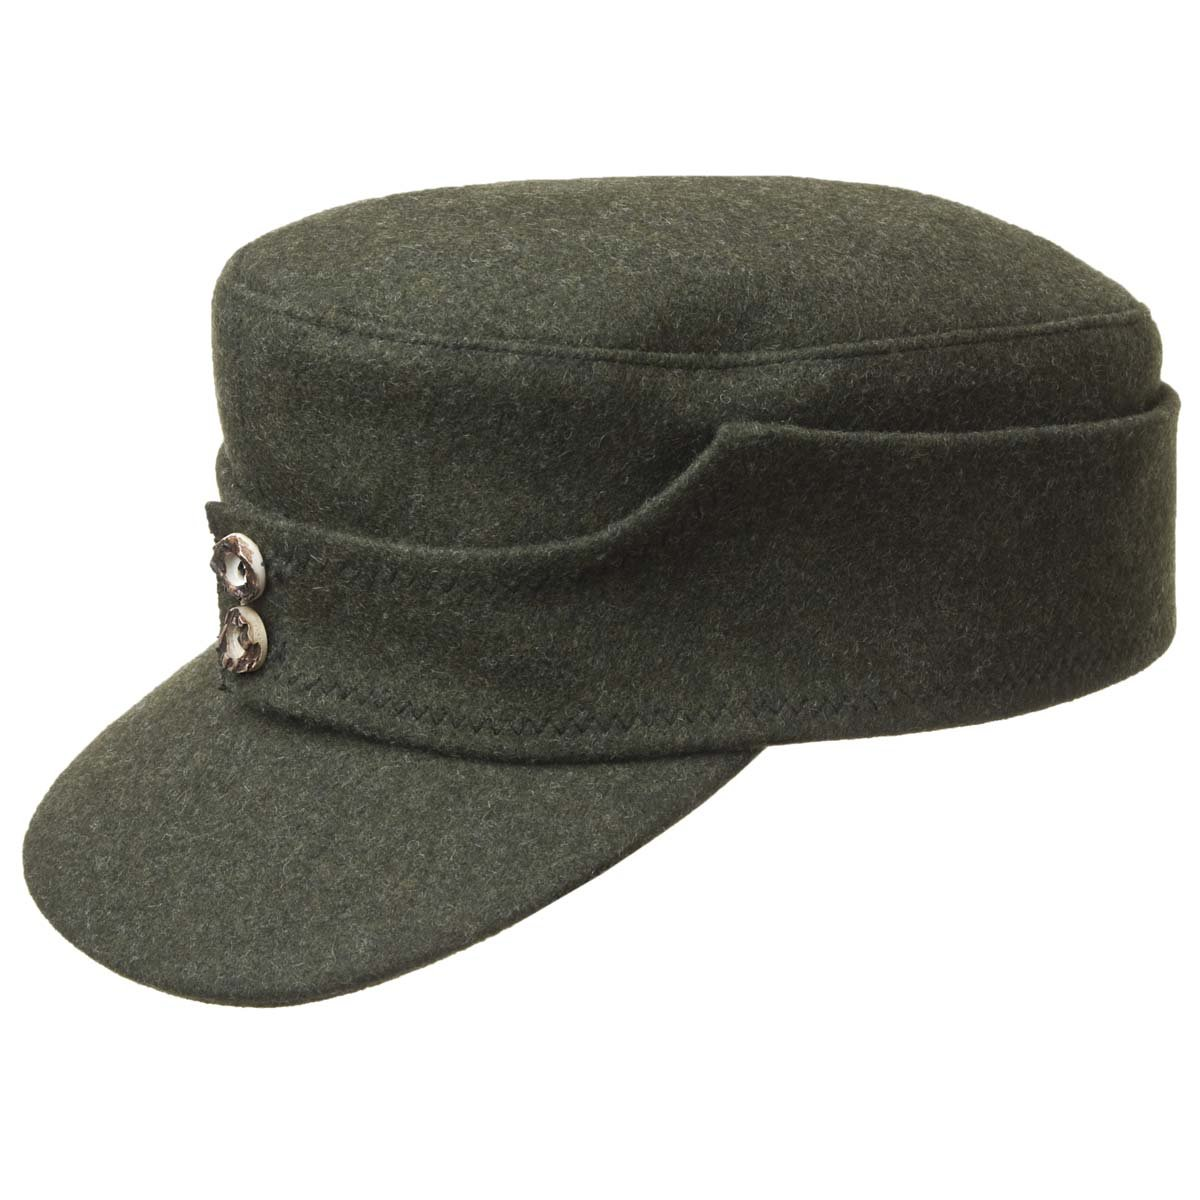 00a94b568f7 The hunter cap in wool felt with visor by HUTTER